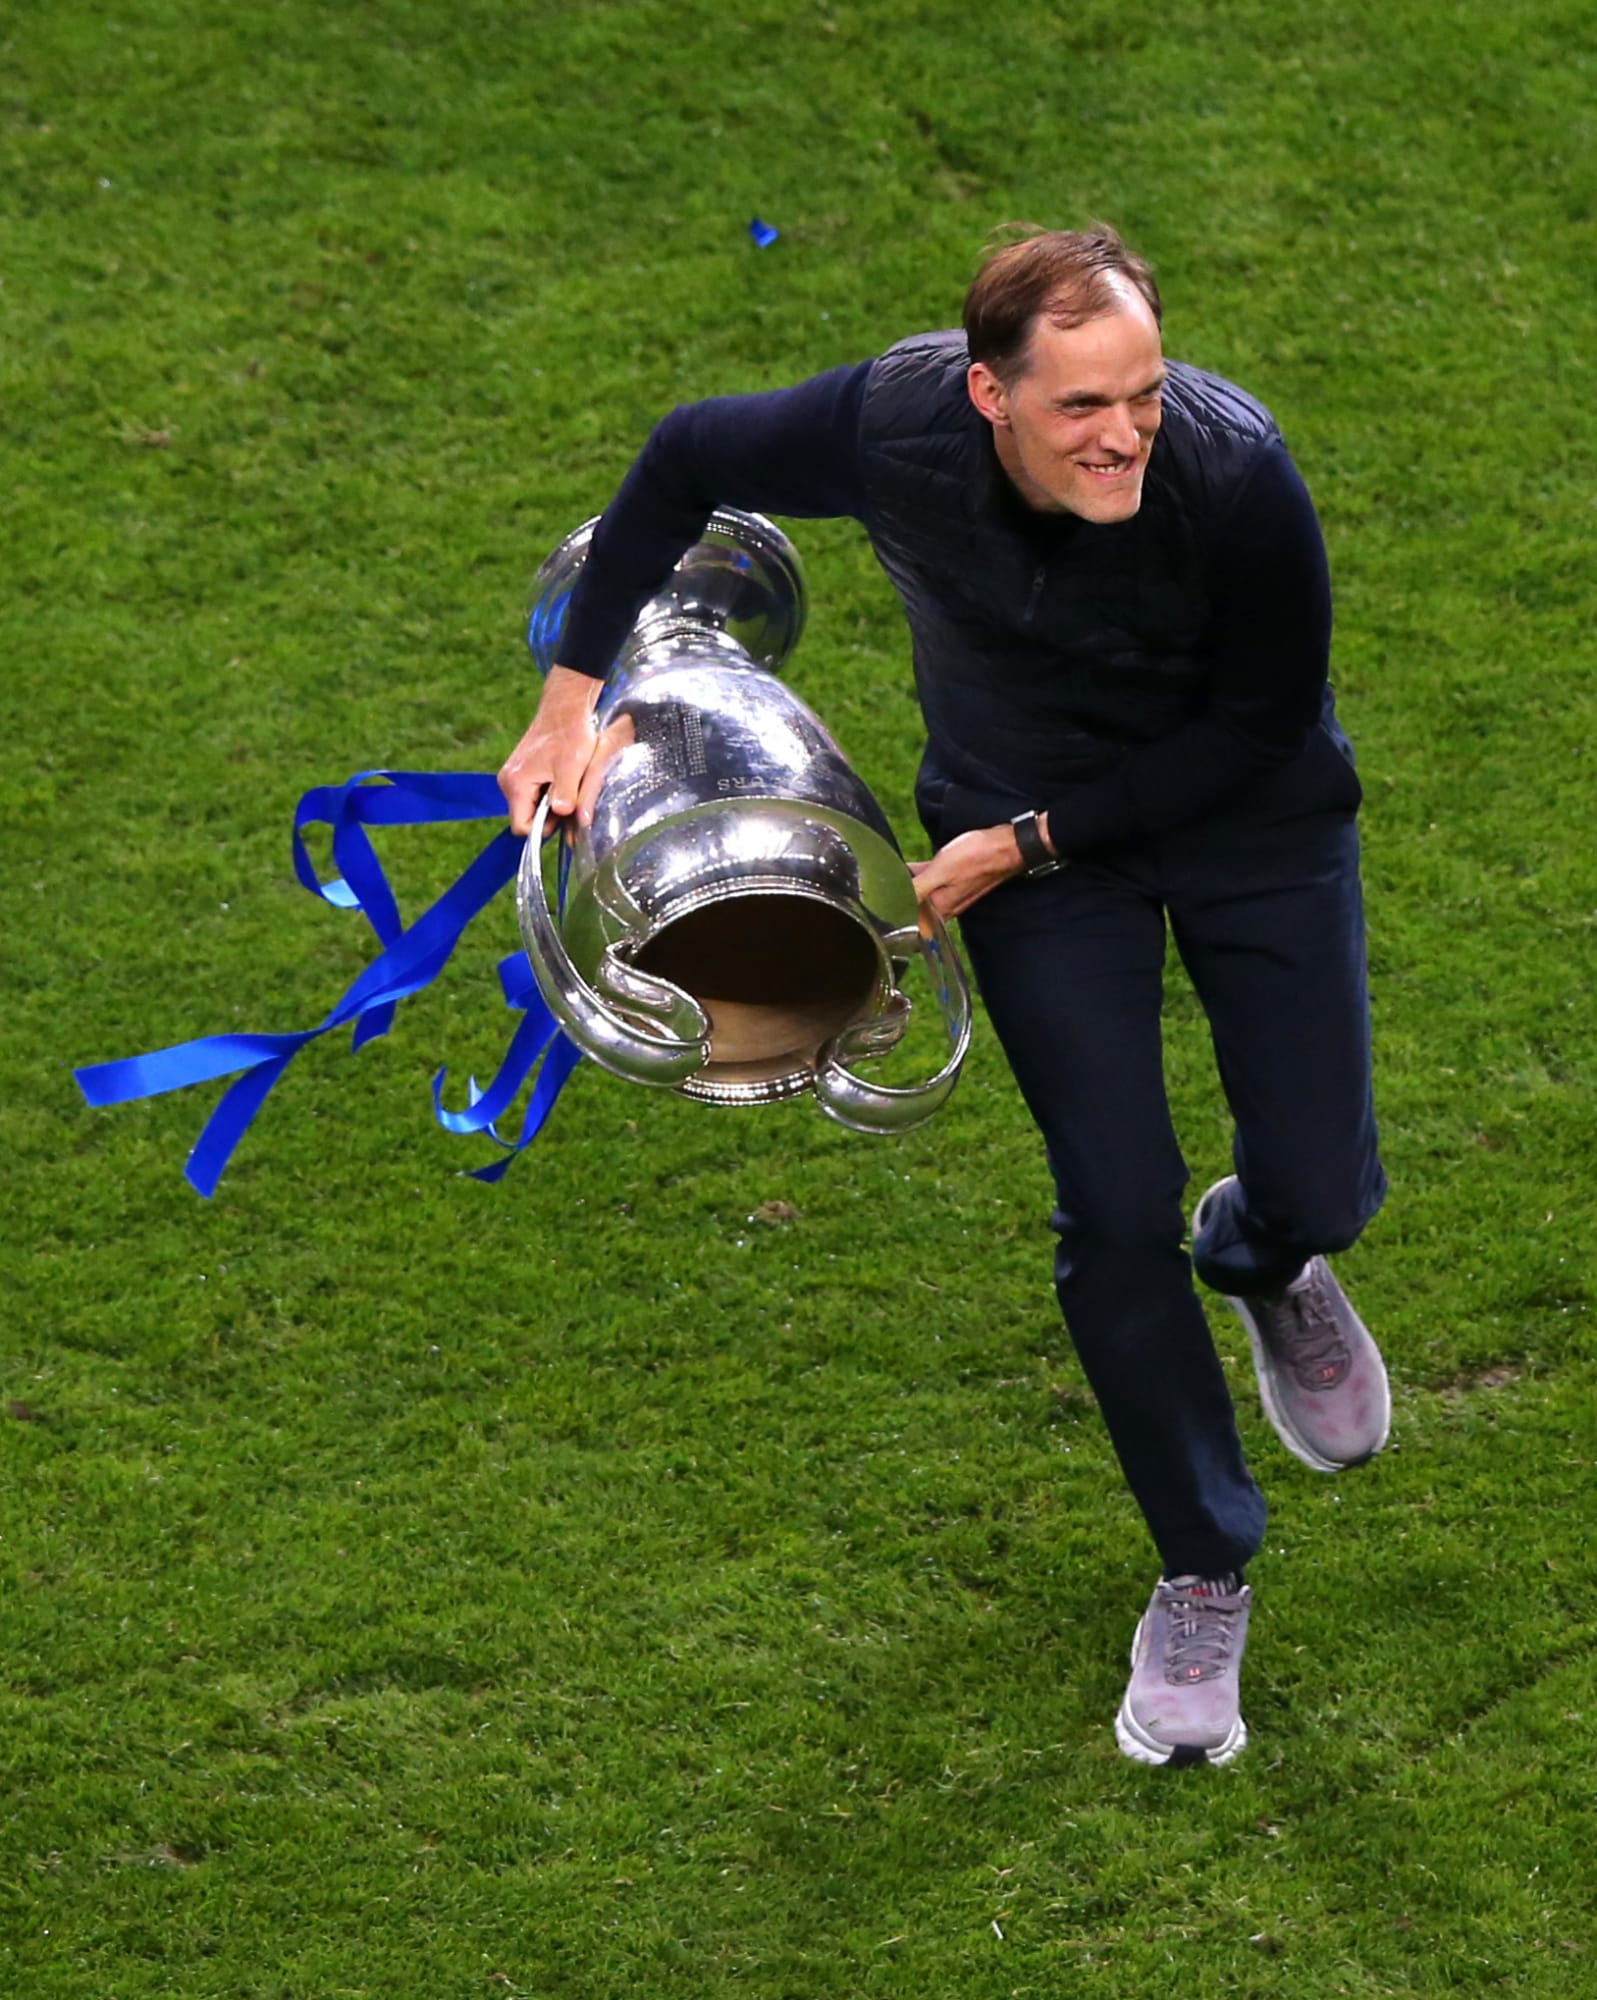 Chelsea's Thomas Tuchel is the best German manager, officially